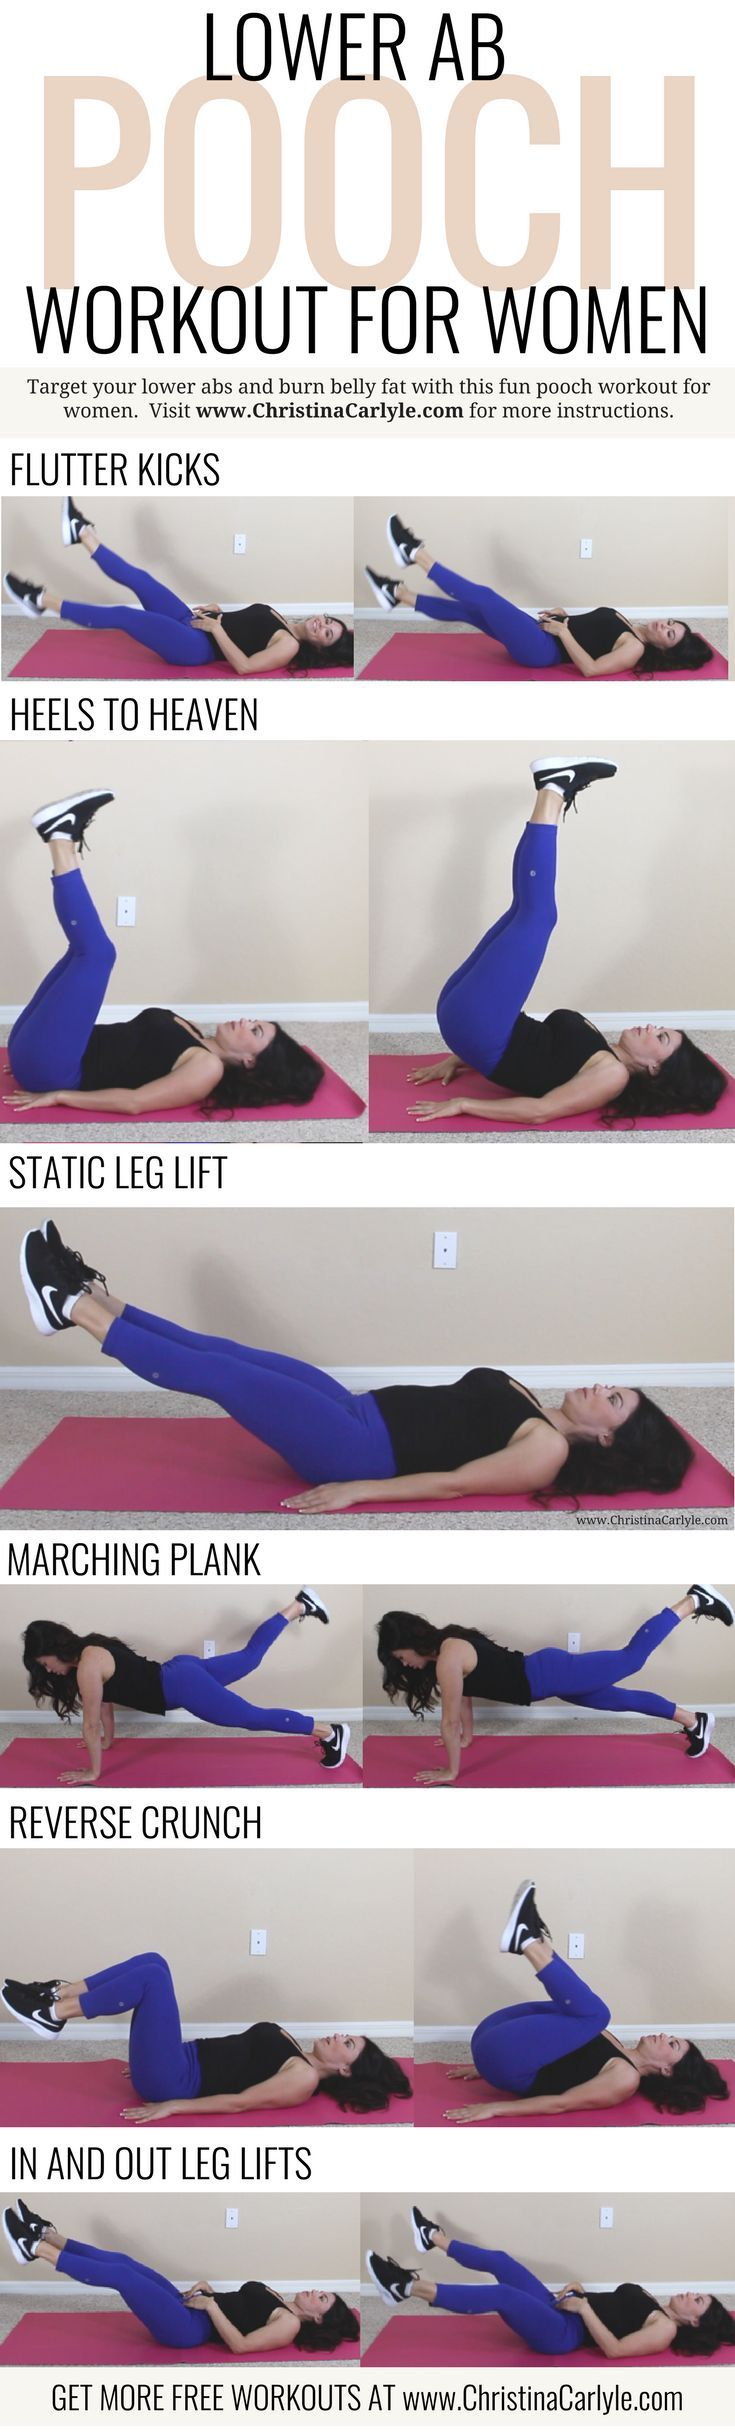 Lower Ab Exercises  Workout for Women  Exercise  Pinterest